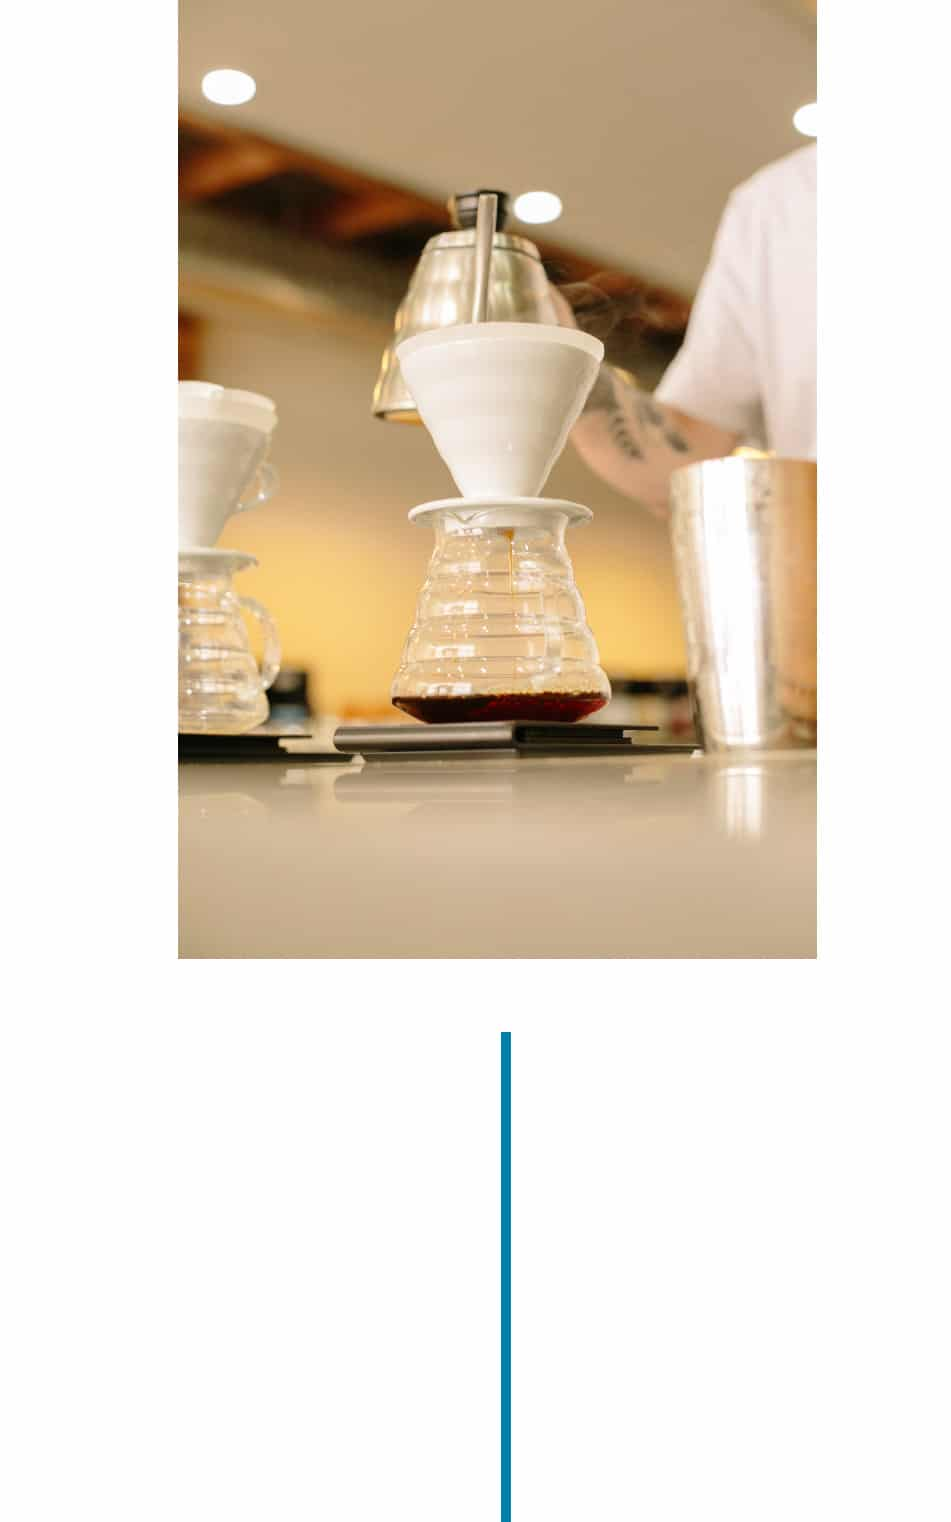 Slowly pour in circles (around quarter-sized diameter) at the center of the V60. Pour should finish at 40 seconds.